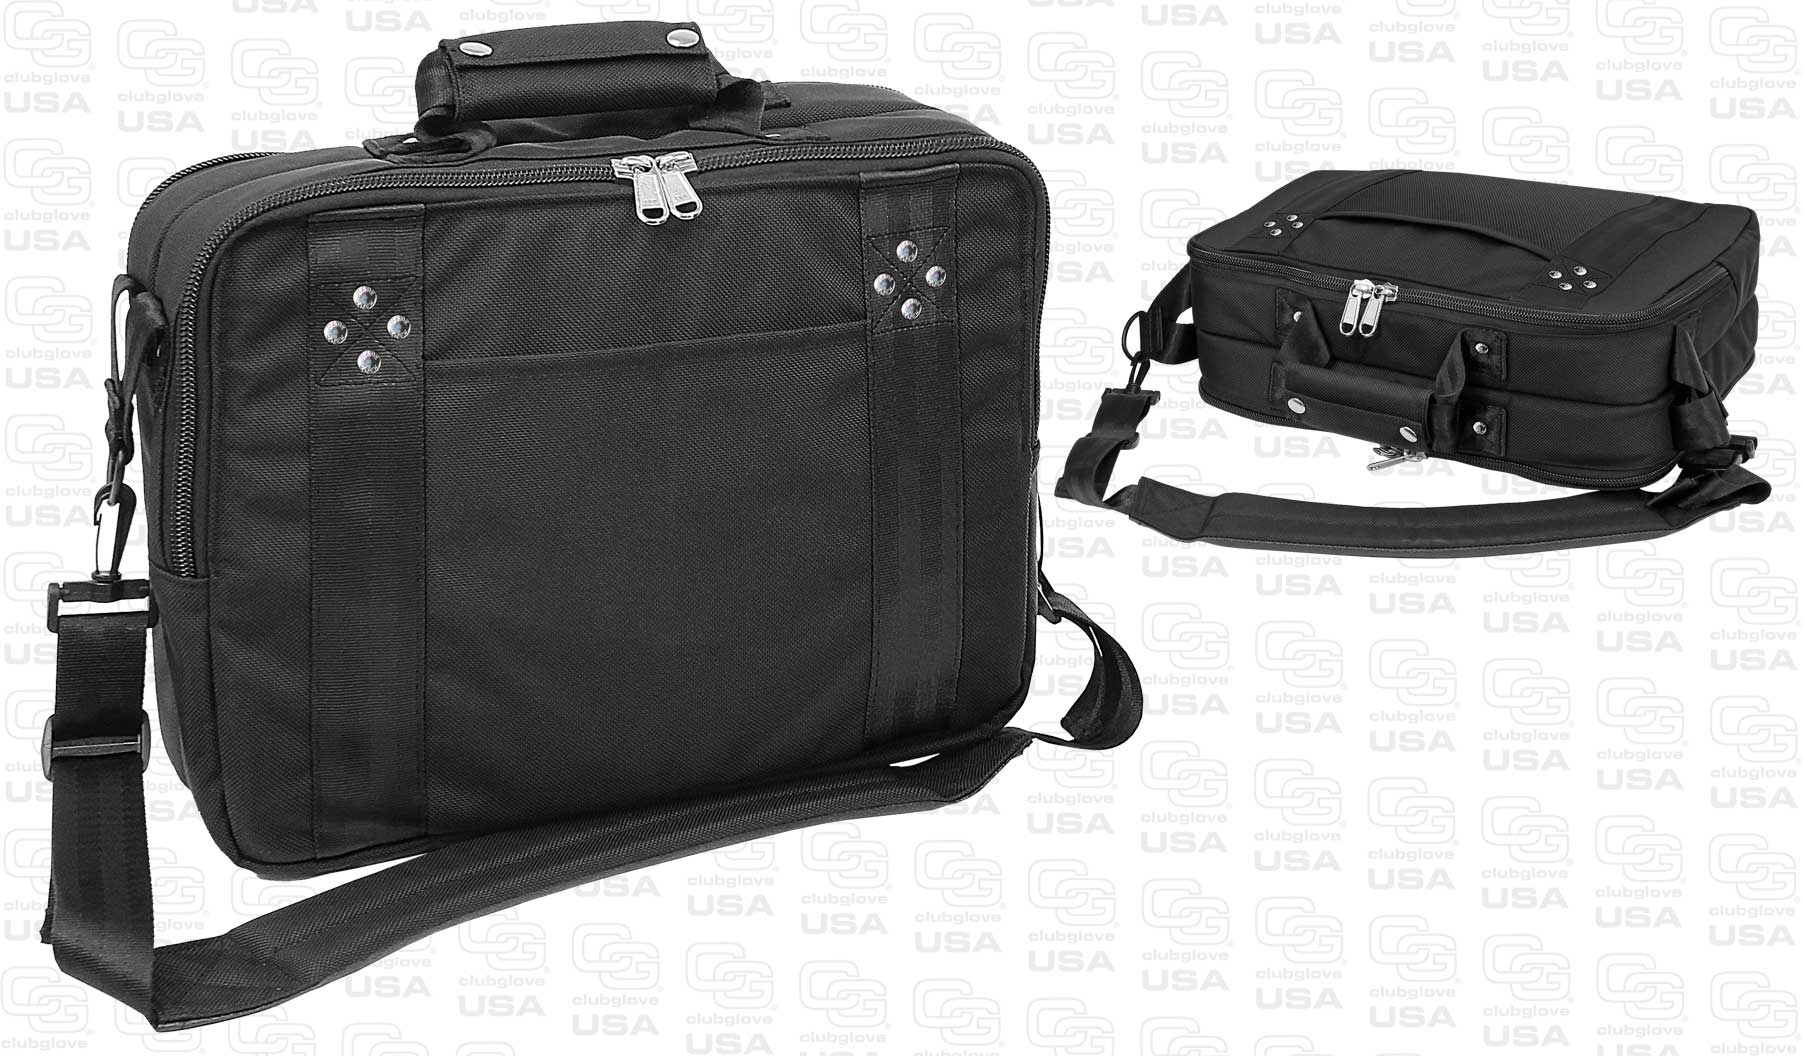 TRS Ballistic Shoulder Bag